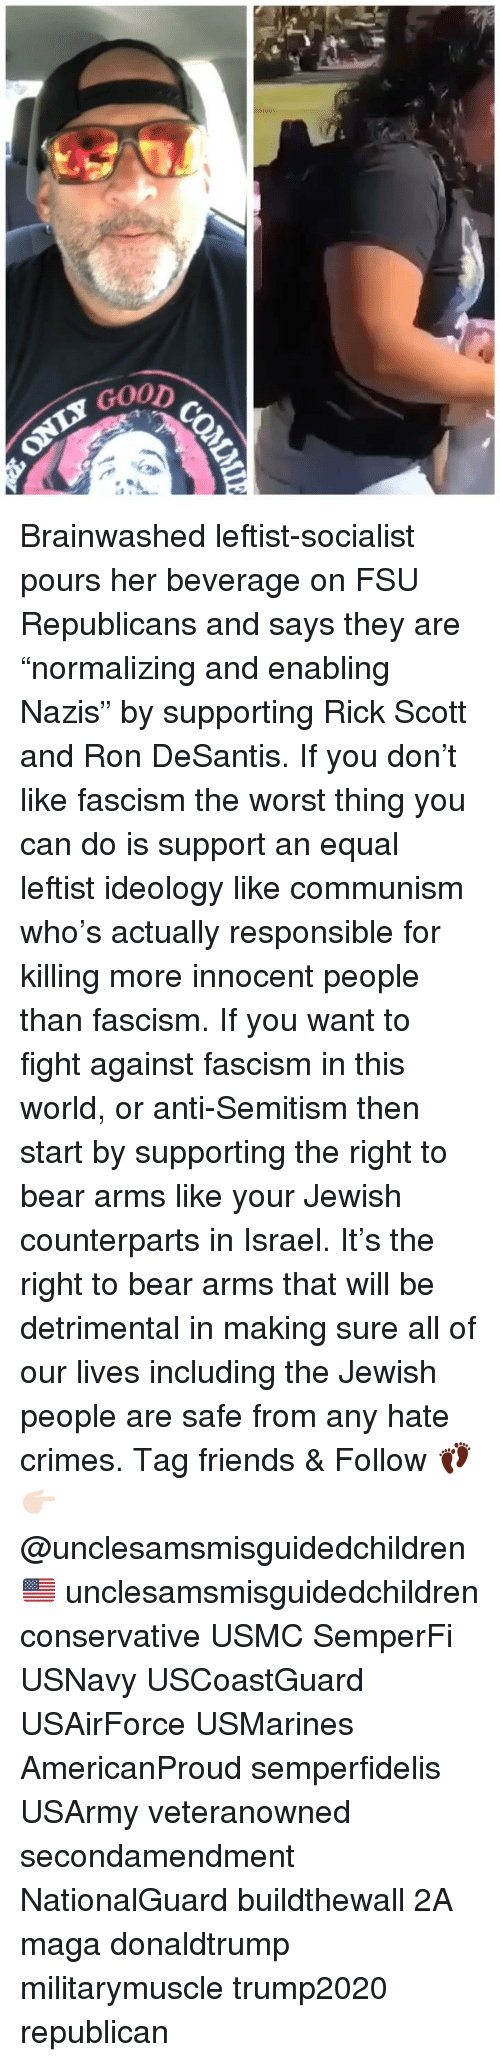 """Friends, Memes, and The Worst: GoOD Brainwashed leftist-socialist pours her beverage on FSU Republicans and says they are """"normalizing and enabling Nazis"""" by supporting Rick Scott and Ron DeSantis. If you don't like fascism the worst thing you can do is support an equal leftist ideology like communism who's actually responsible for killing more innocent people than fascism. If you want to fight against fascism in this world, or anti-Semitism then start by supporting the right to bear arms like your Jewish counterparts in Israel. It's the right to bear arms that will be detrimental in making sure all of our lives including the Jewish people are safe from any hate crimes. Tag friends & Follow 👣 👉🏻 @unclesamsmisguidedchildren 🇺🇸 unclesamsmisguidedchildren conservative USMC SemperFi USNavy USCoastGuard USAirForce USMarines AmericanProud semperfidelis USArmy veteranowned secondamendment NationalGuard buildthewall 2A maga donaldtrump militarymuscle trump2020 republican"""